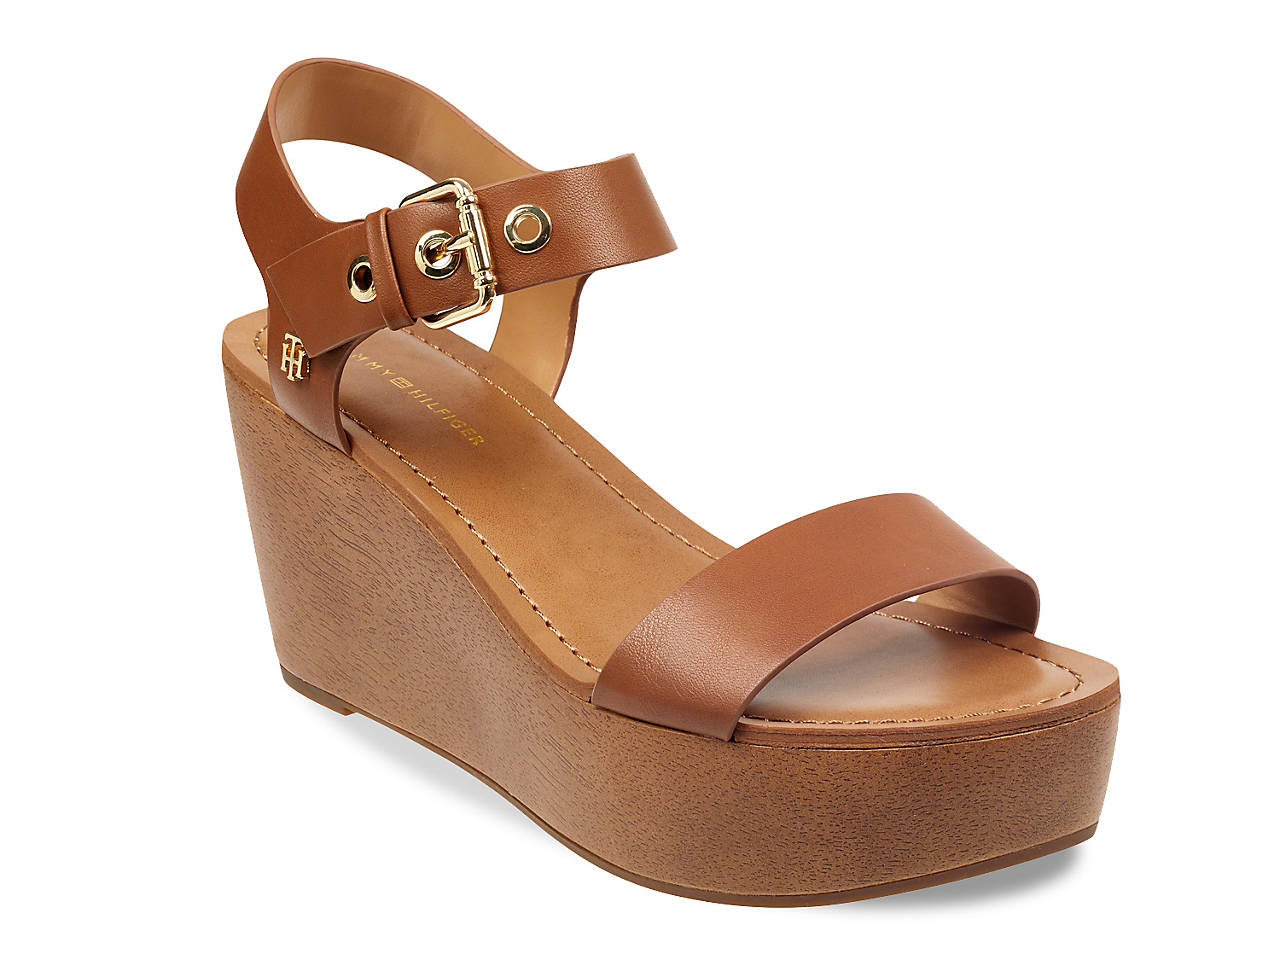 e648caf93bb Tommy Hilfiger Witt Wedge Sandal Women's Shoes | DSW